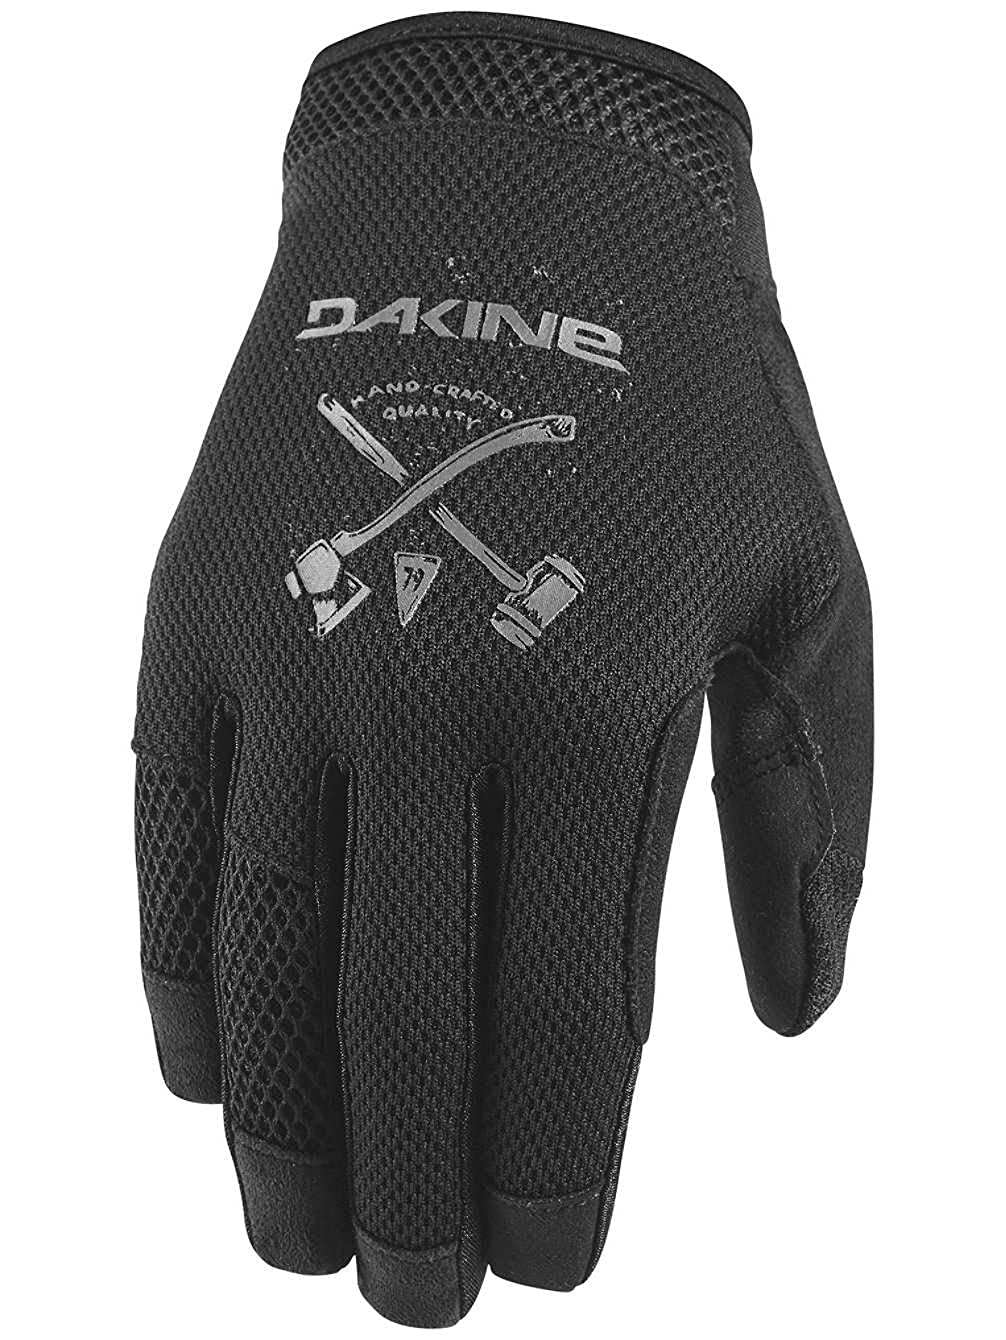 Description: Dakine Men's Covert Bike Gloves, Black, XS